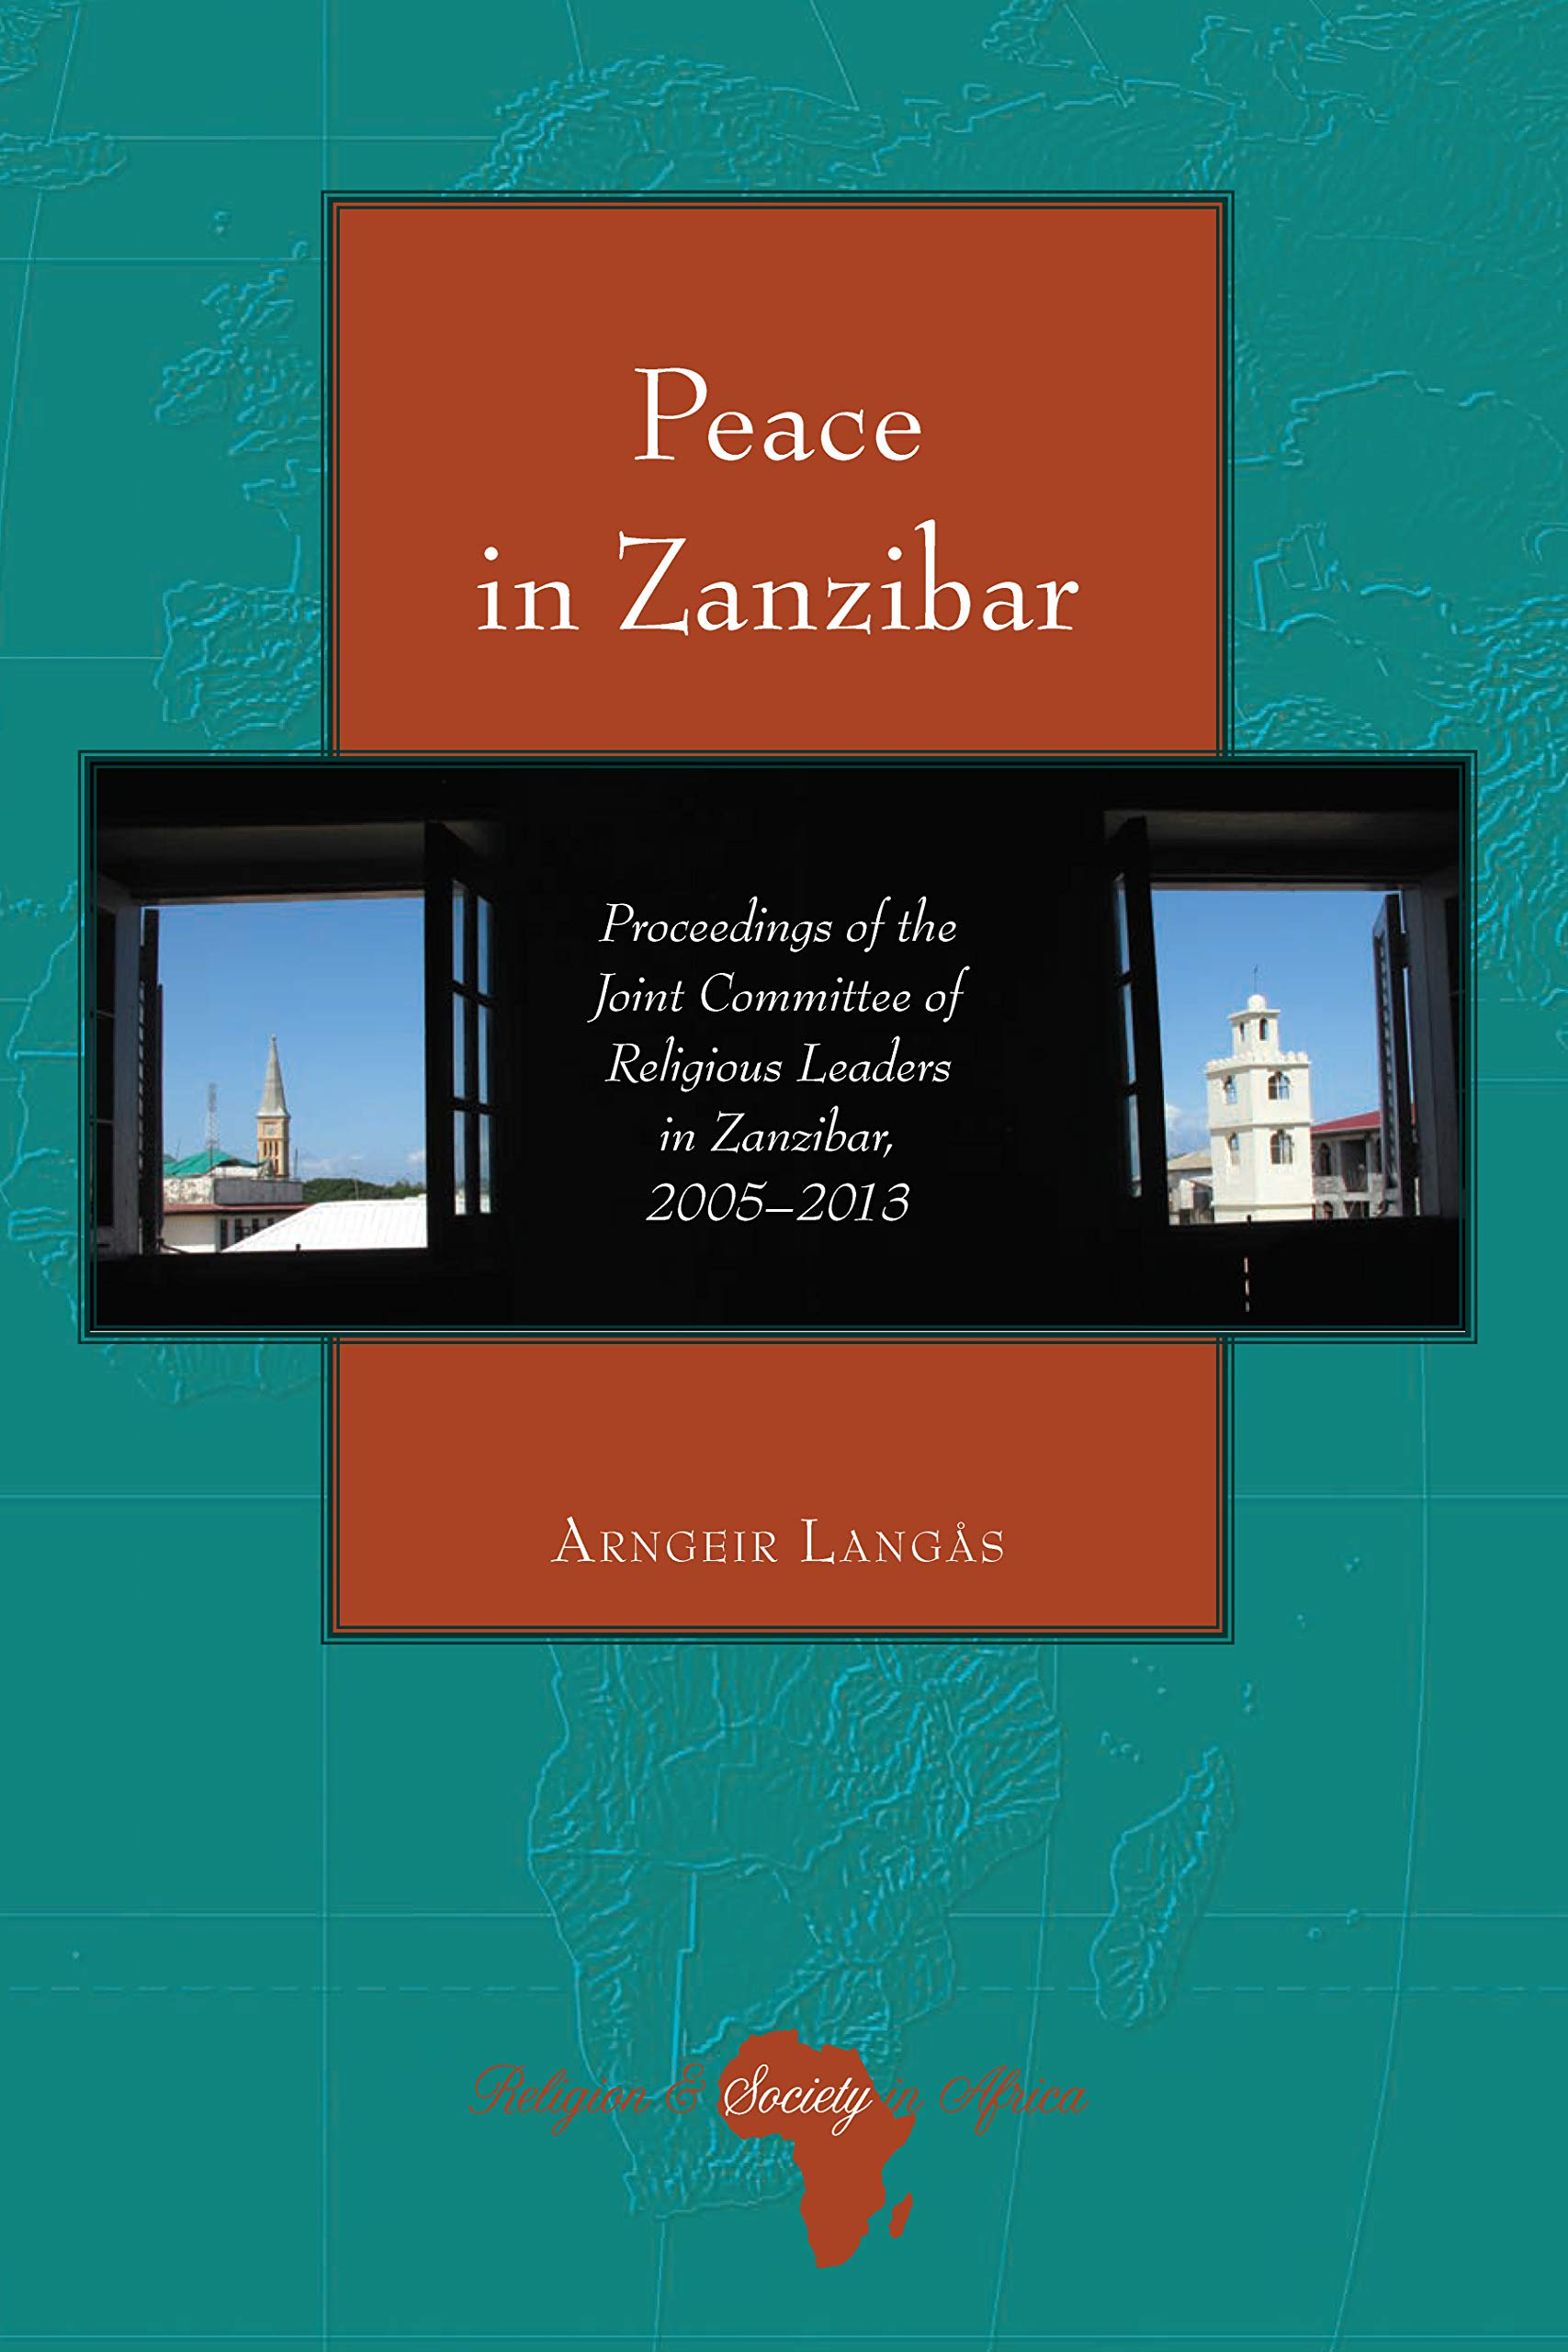 Peace in Zanzibar: Proceedings of the Joint Committee of Religious Leaders in Zanzibar, 2005-2013 (Religion and Society in Africa) by Peter Lang Inc., International Academic Publishers